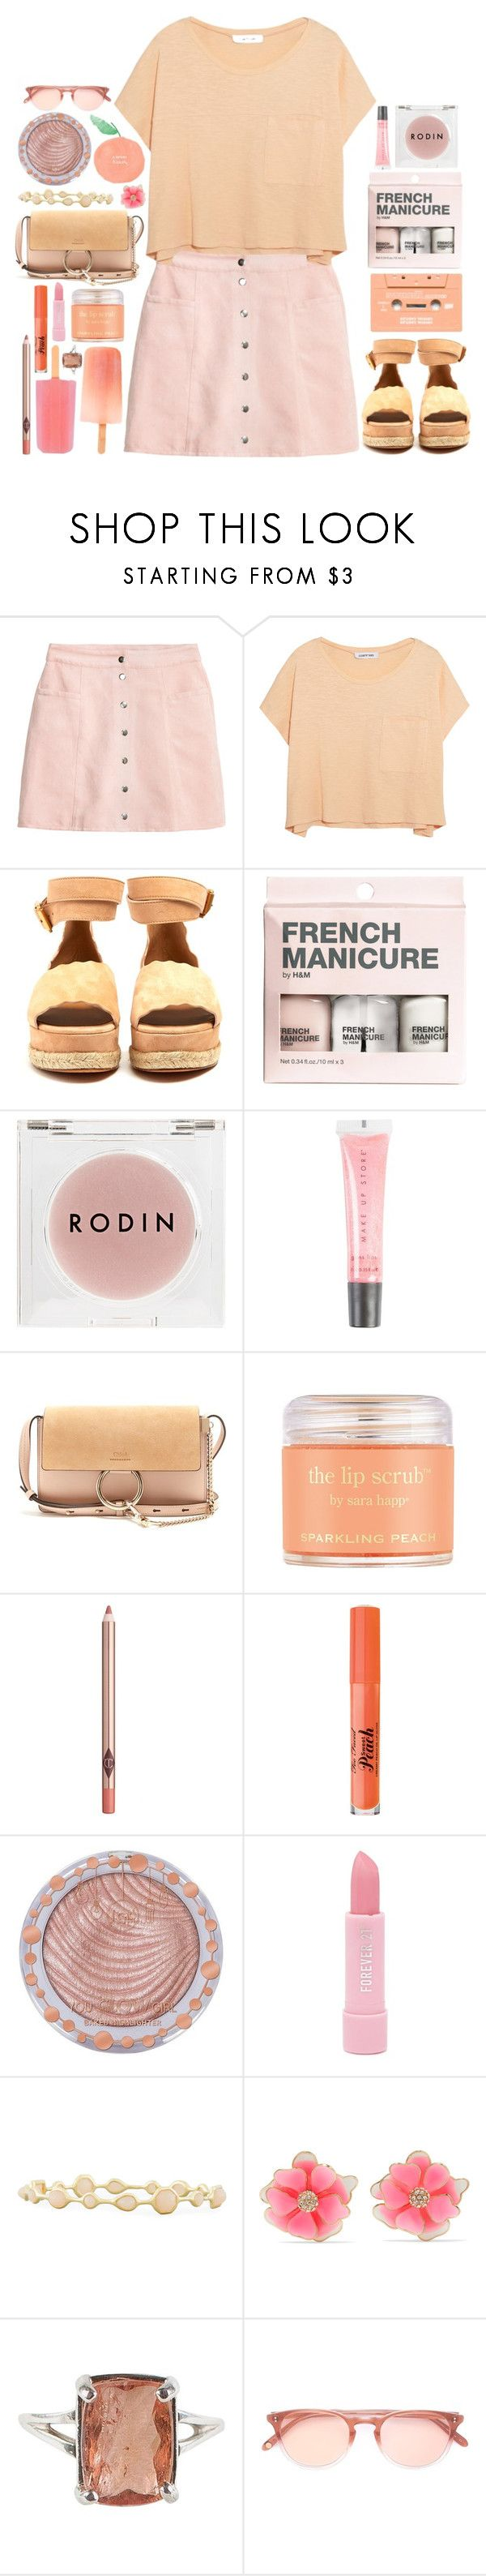 """pink and peach"" by issuri ❤ liked on Polyvore featuring H&M, Elizabeth and James, Chloé, Rodin, MAKE UP STORE, Sara Happ, Charlotte Tilbury, Too Faced Cosmetics, Charlotte Russe and Forever 21"